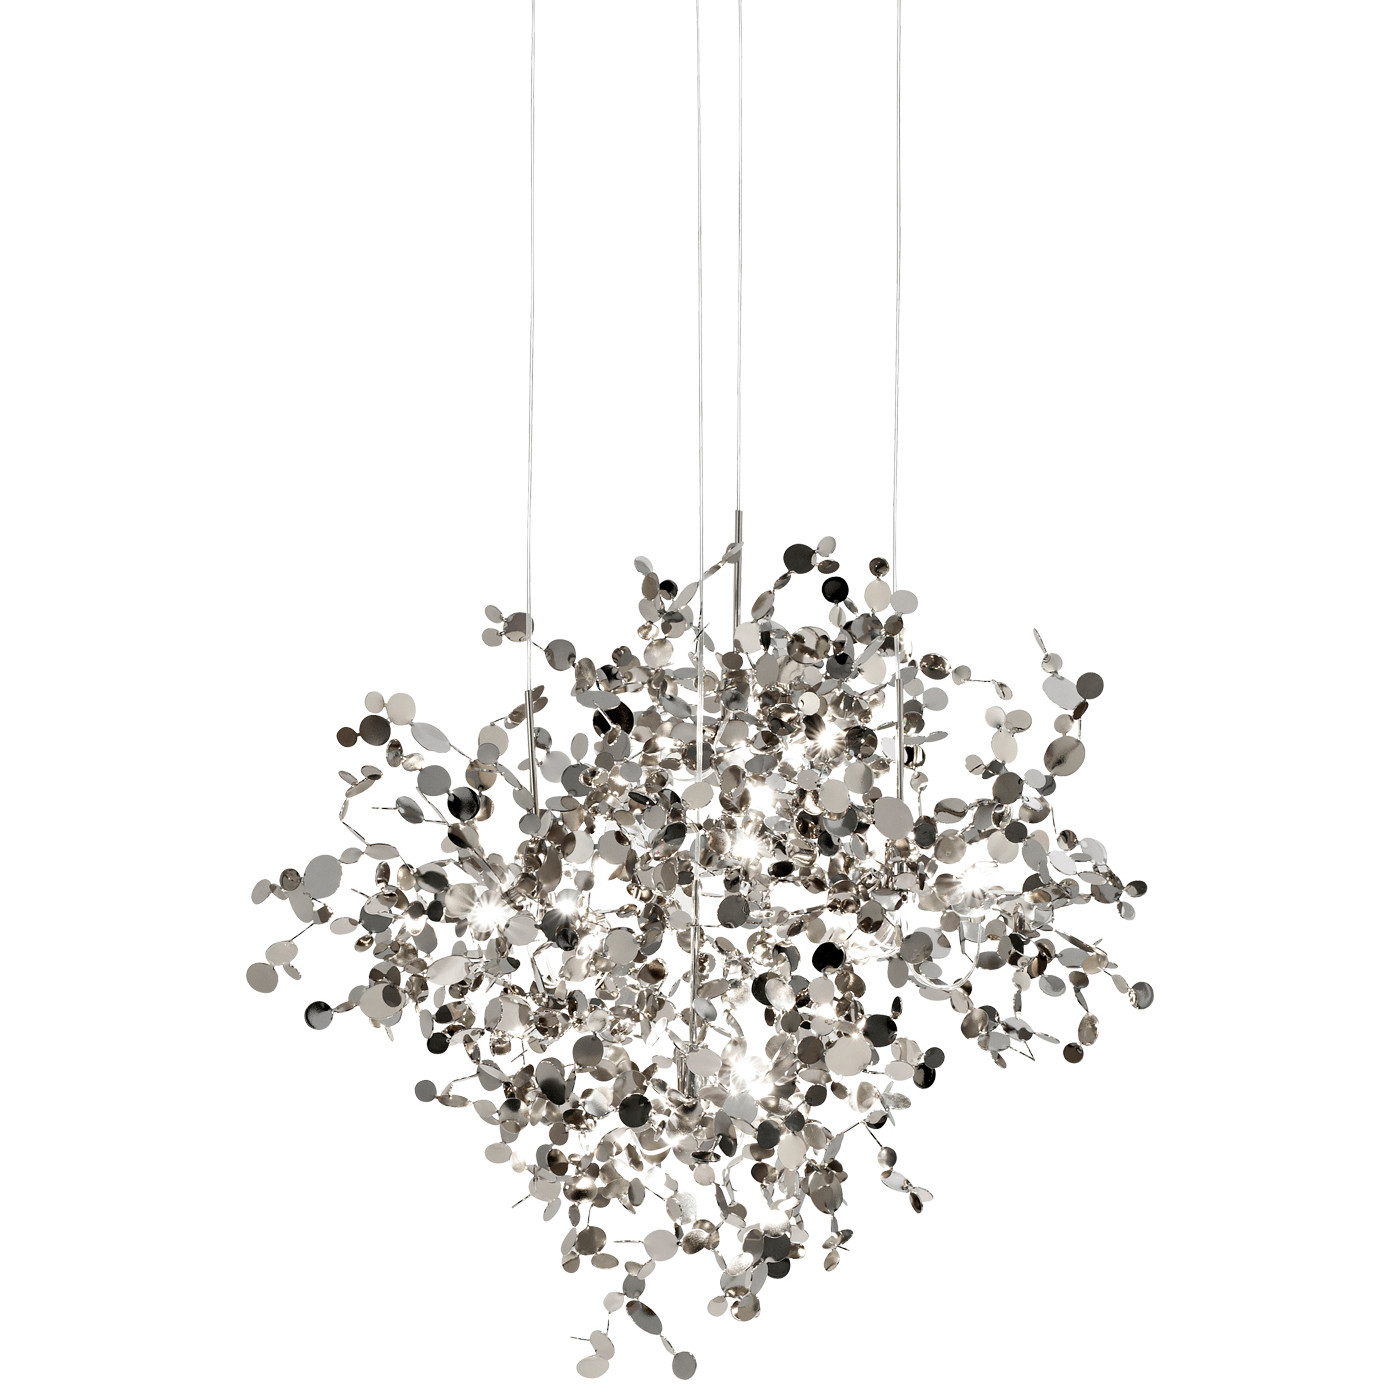 Terzani Argent N91s Pendant Light At